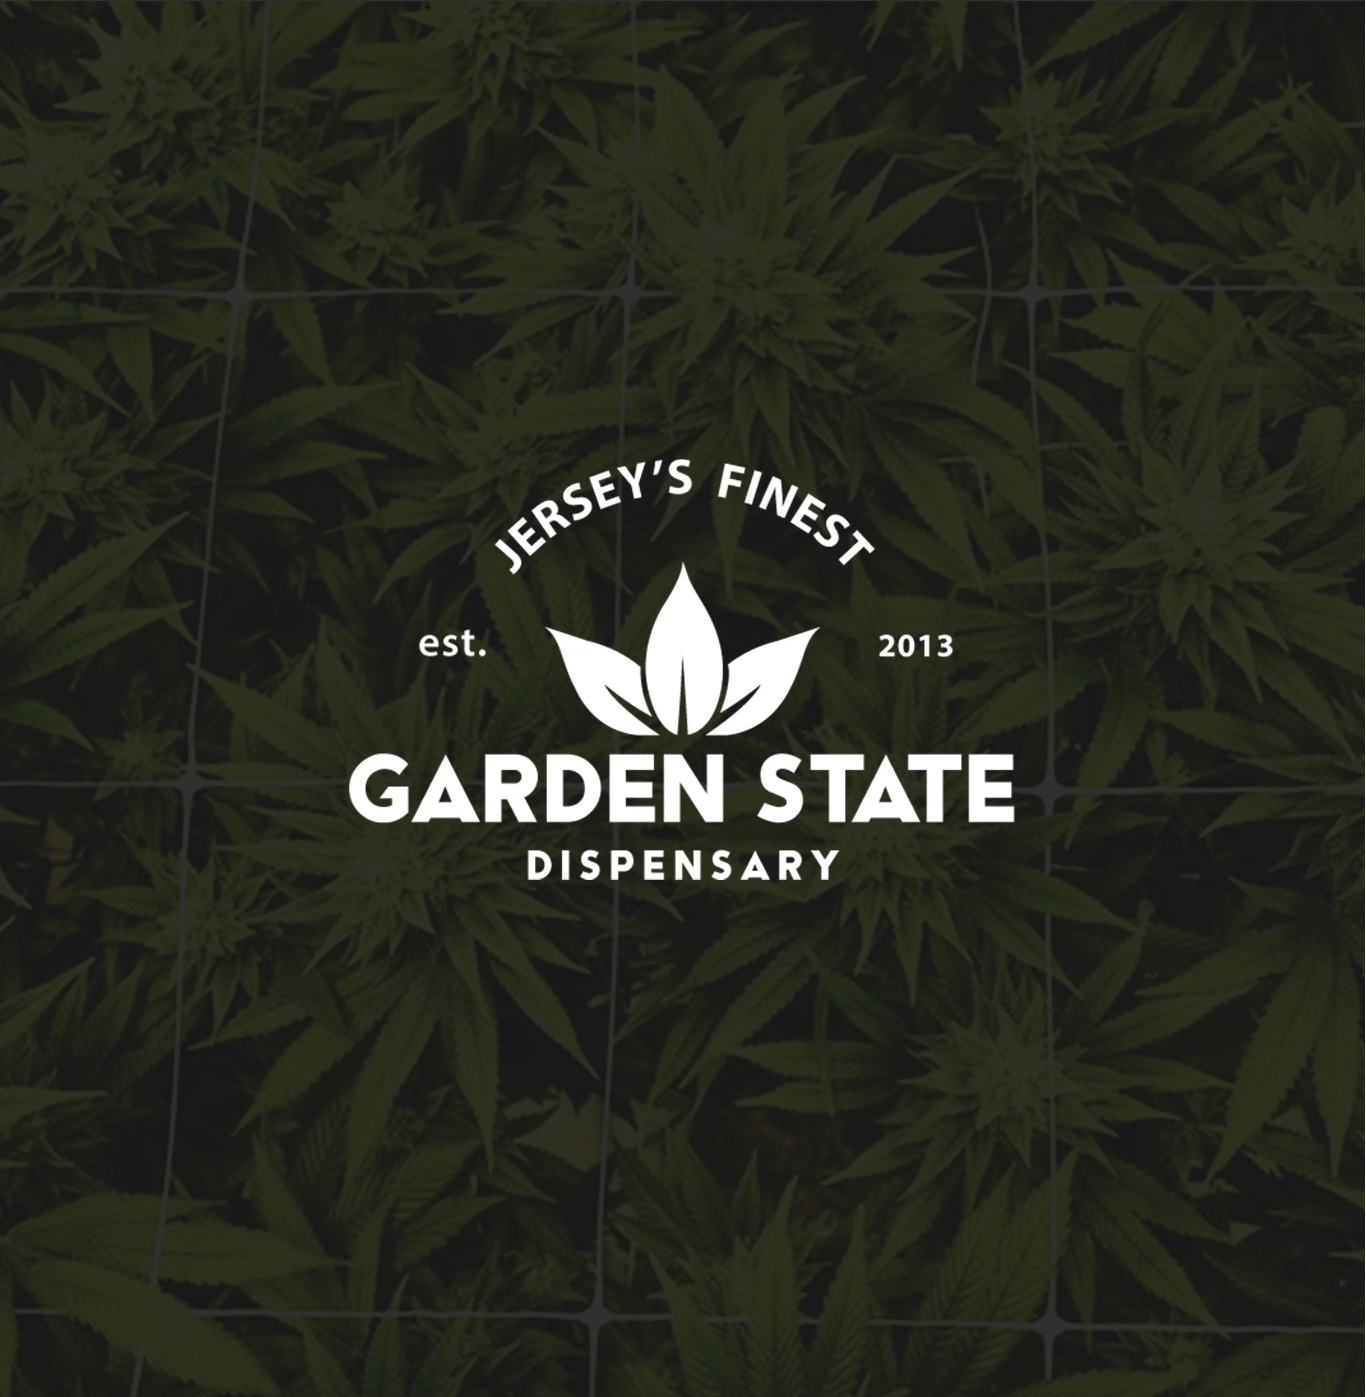 GARDEN STATE DISPENSARY OPEN NEAR ME